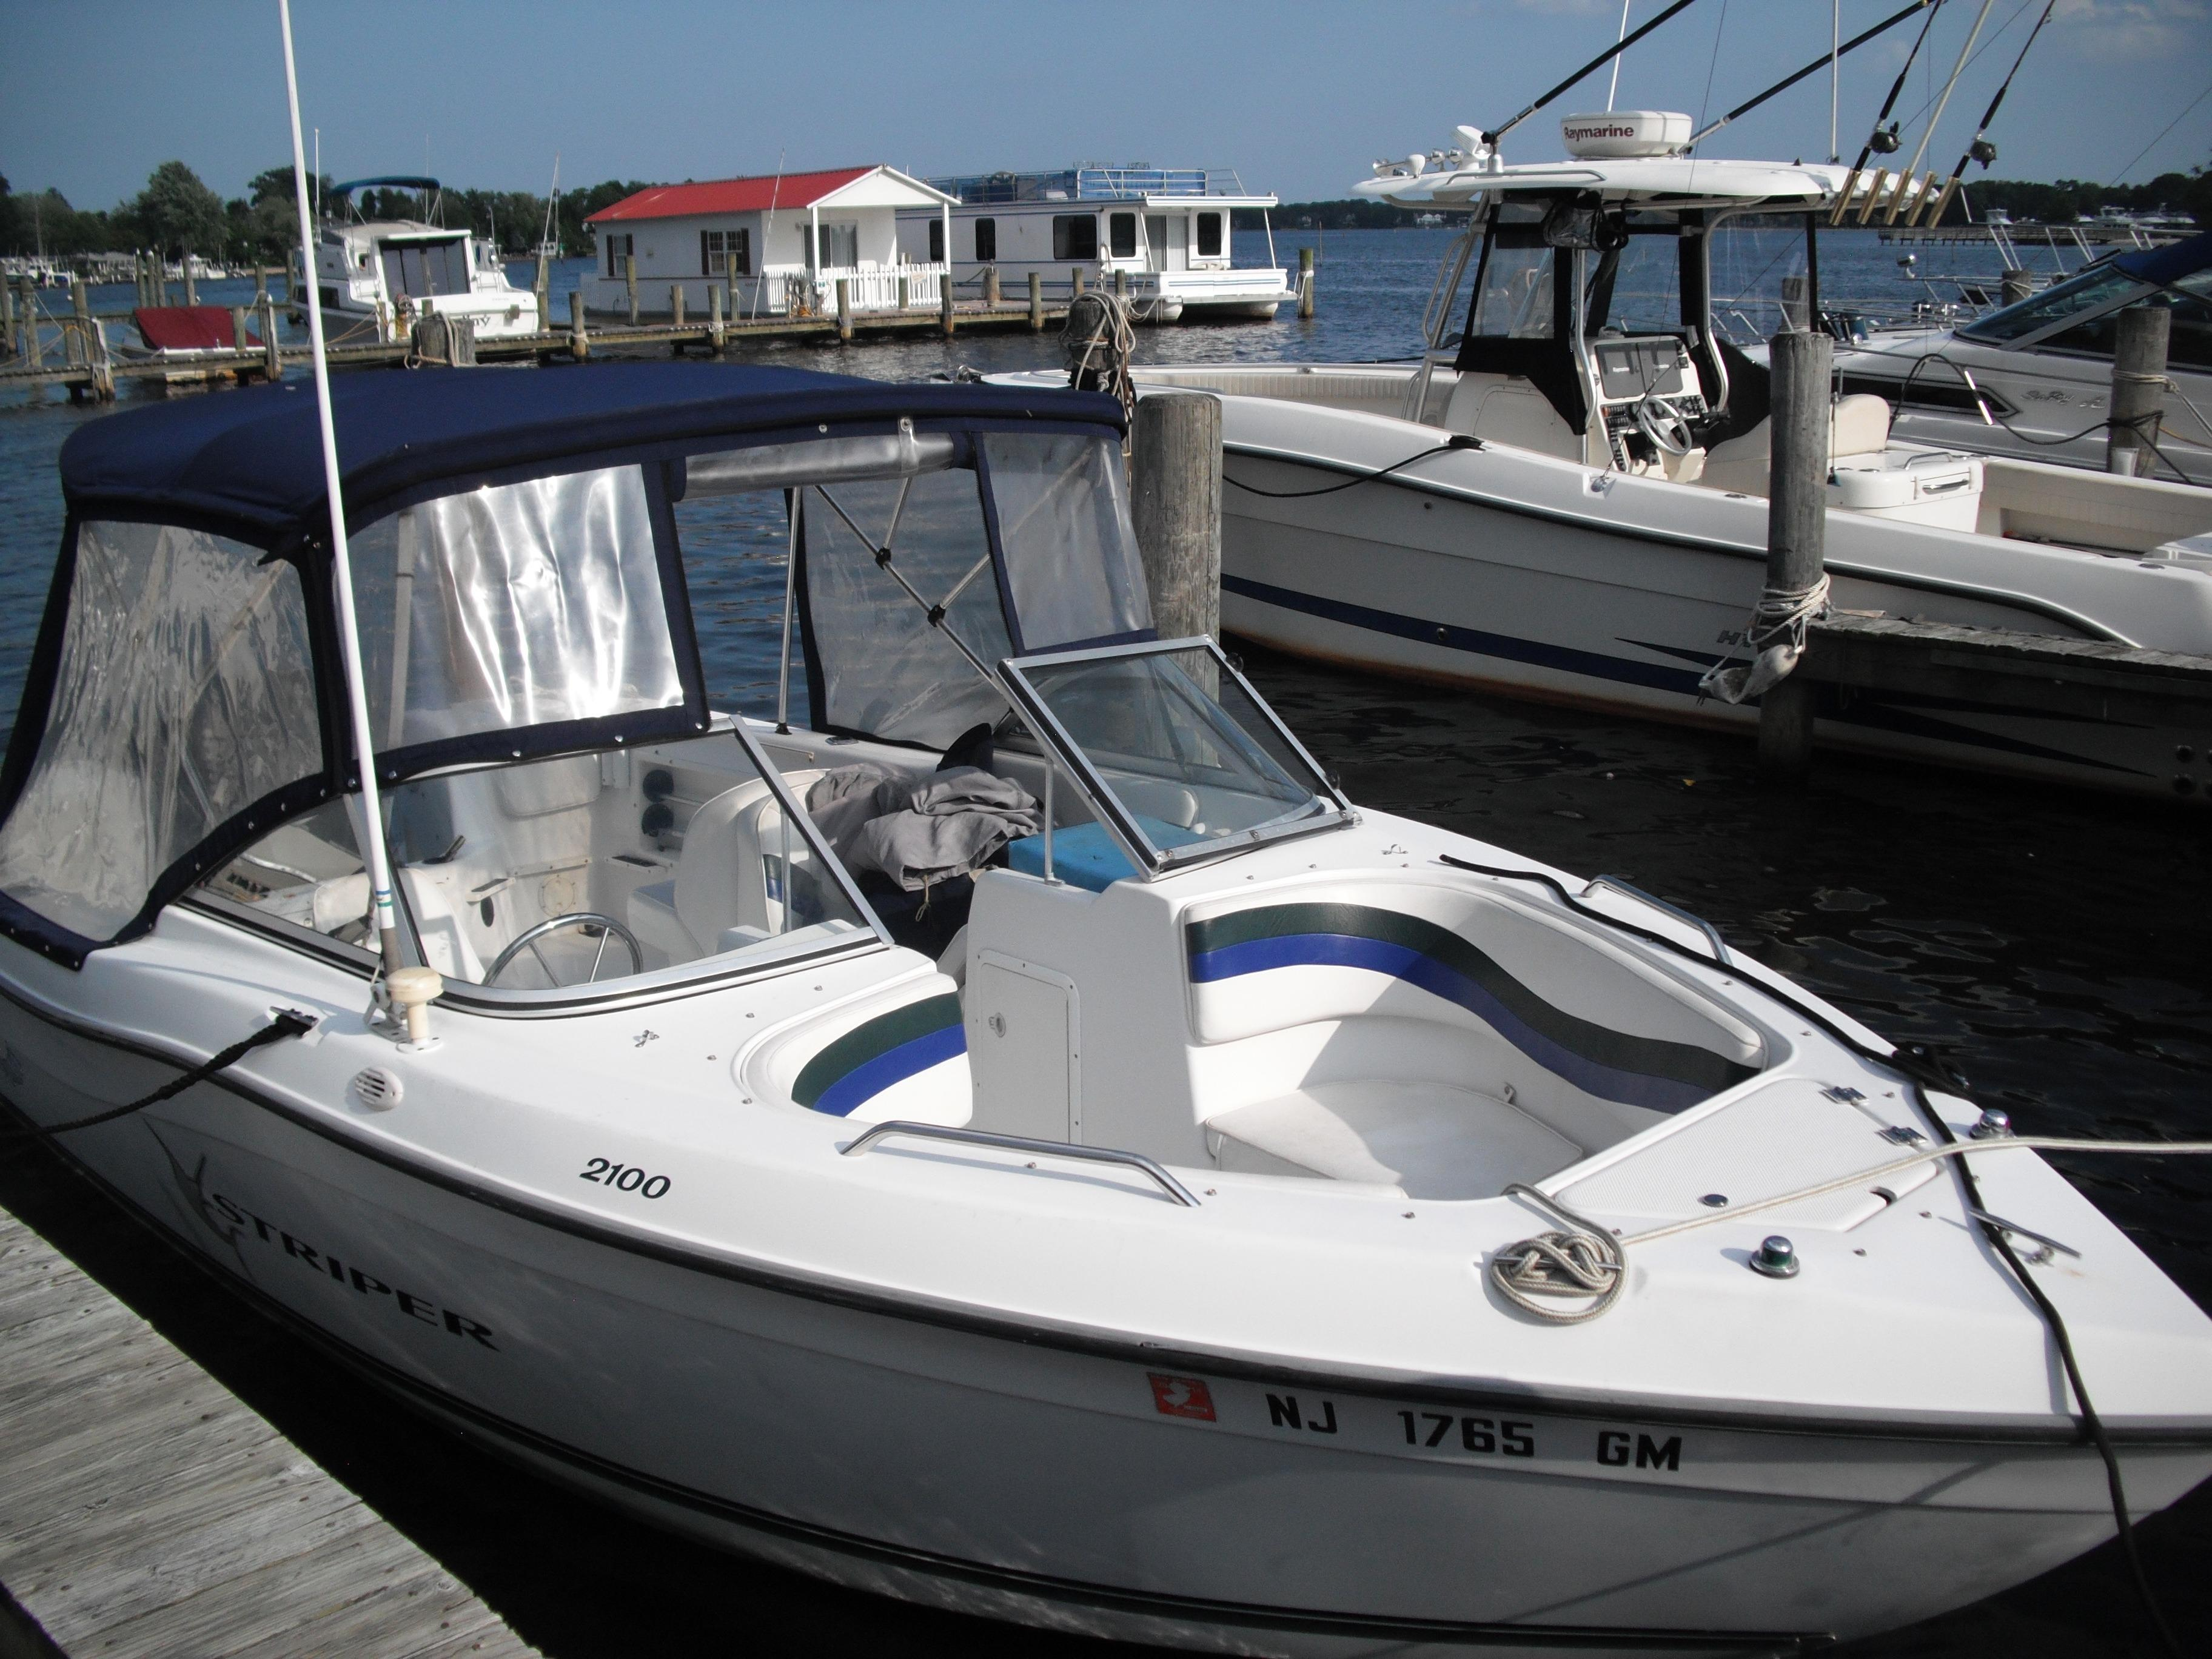 2000 Sea Swirl 2100 Striper Power Boat For Sale Www